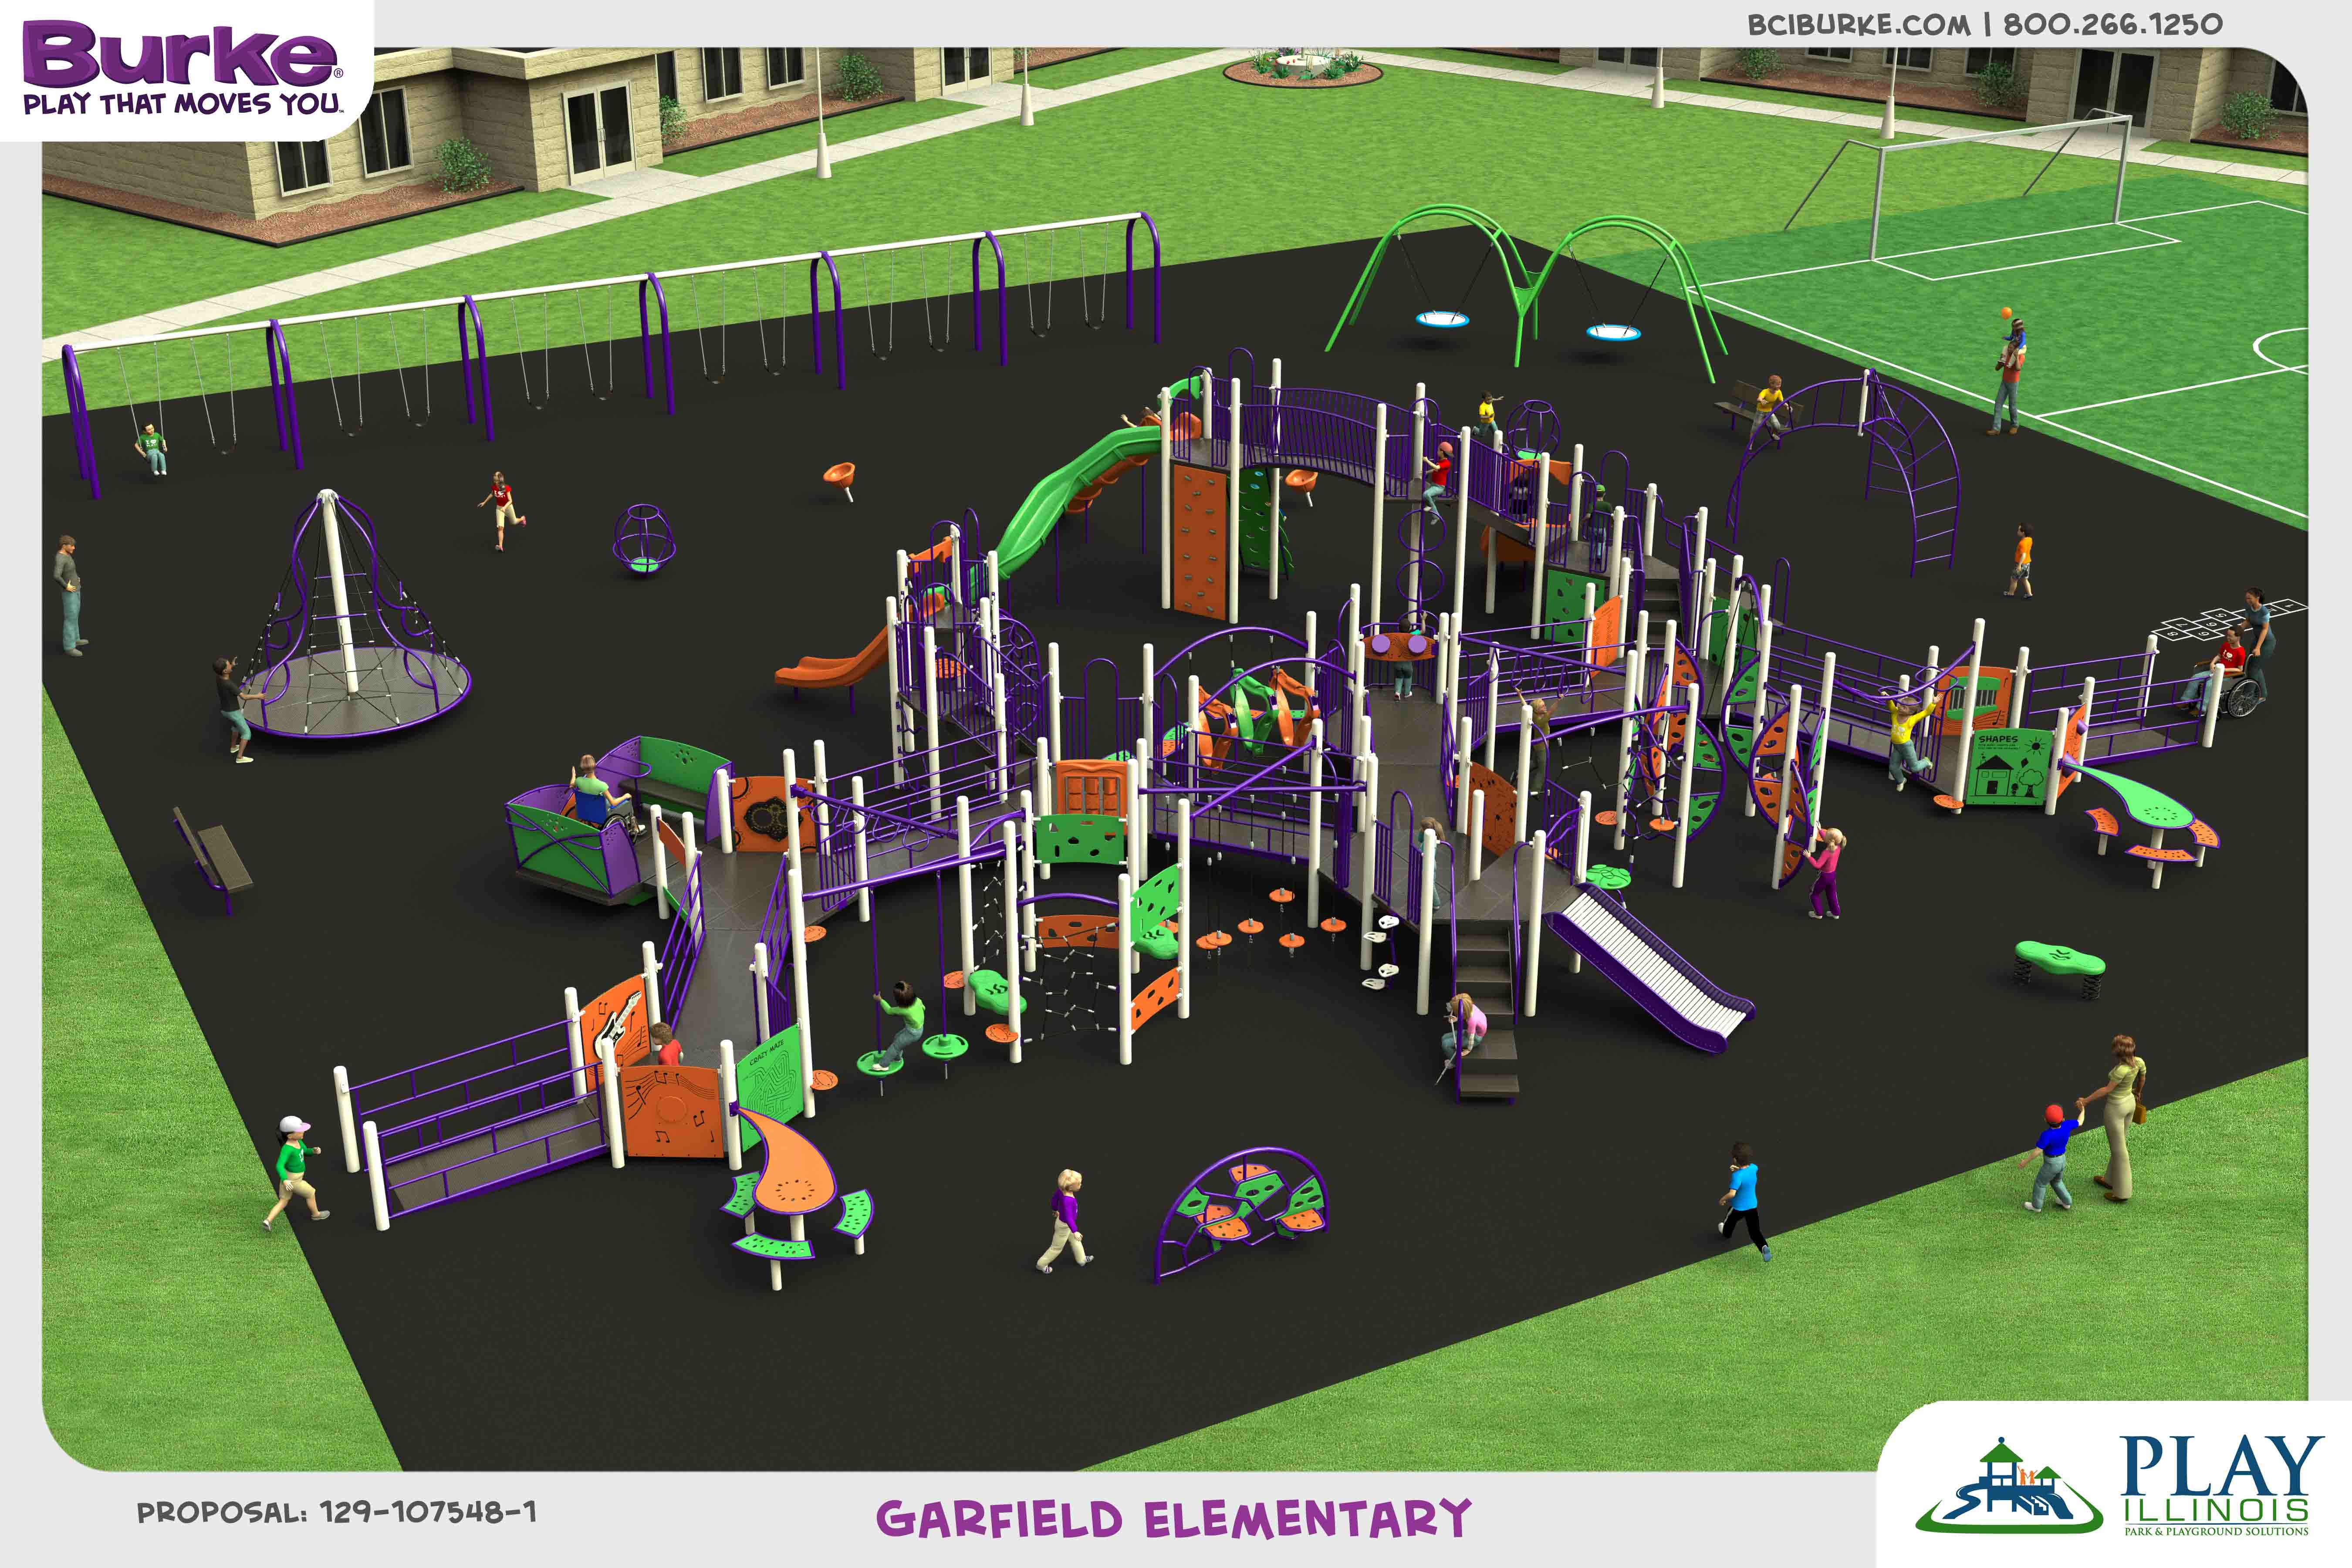 GarfieldElementary dream build play experience accessible playgrounds